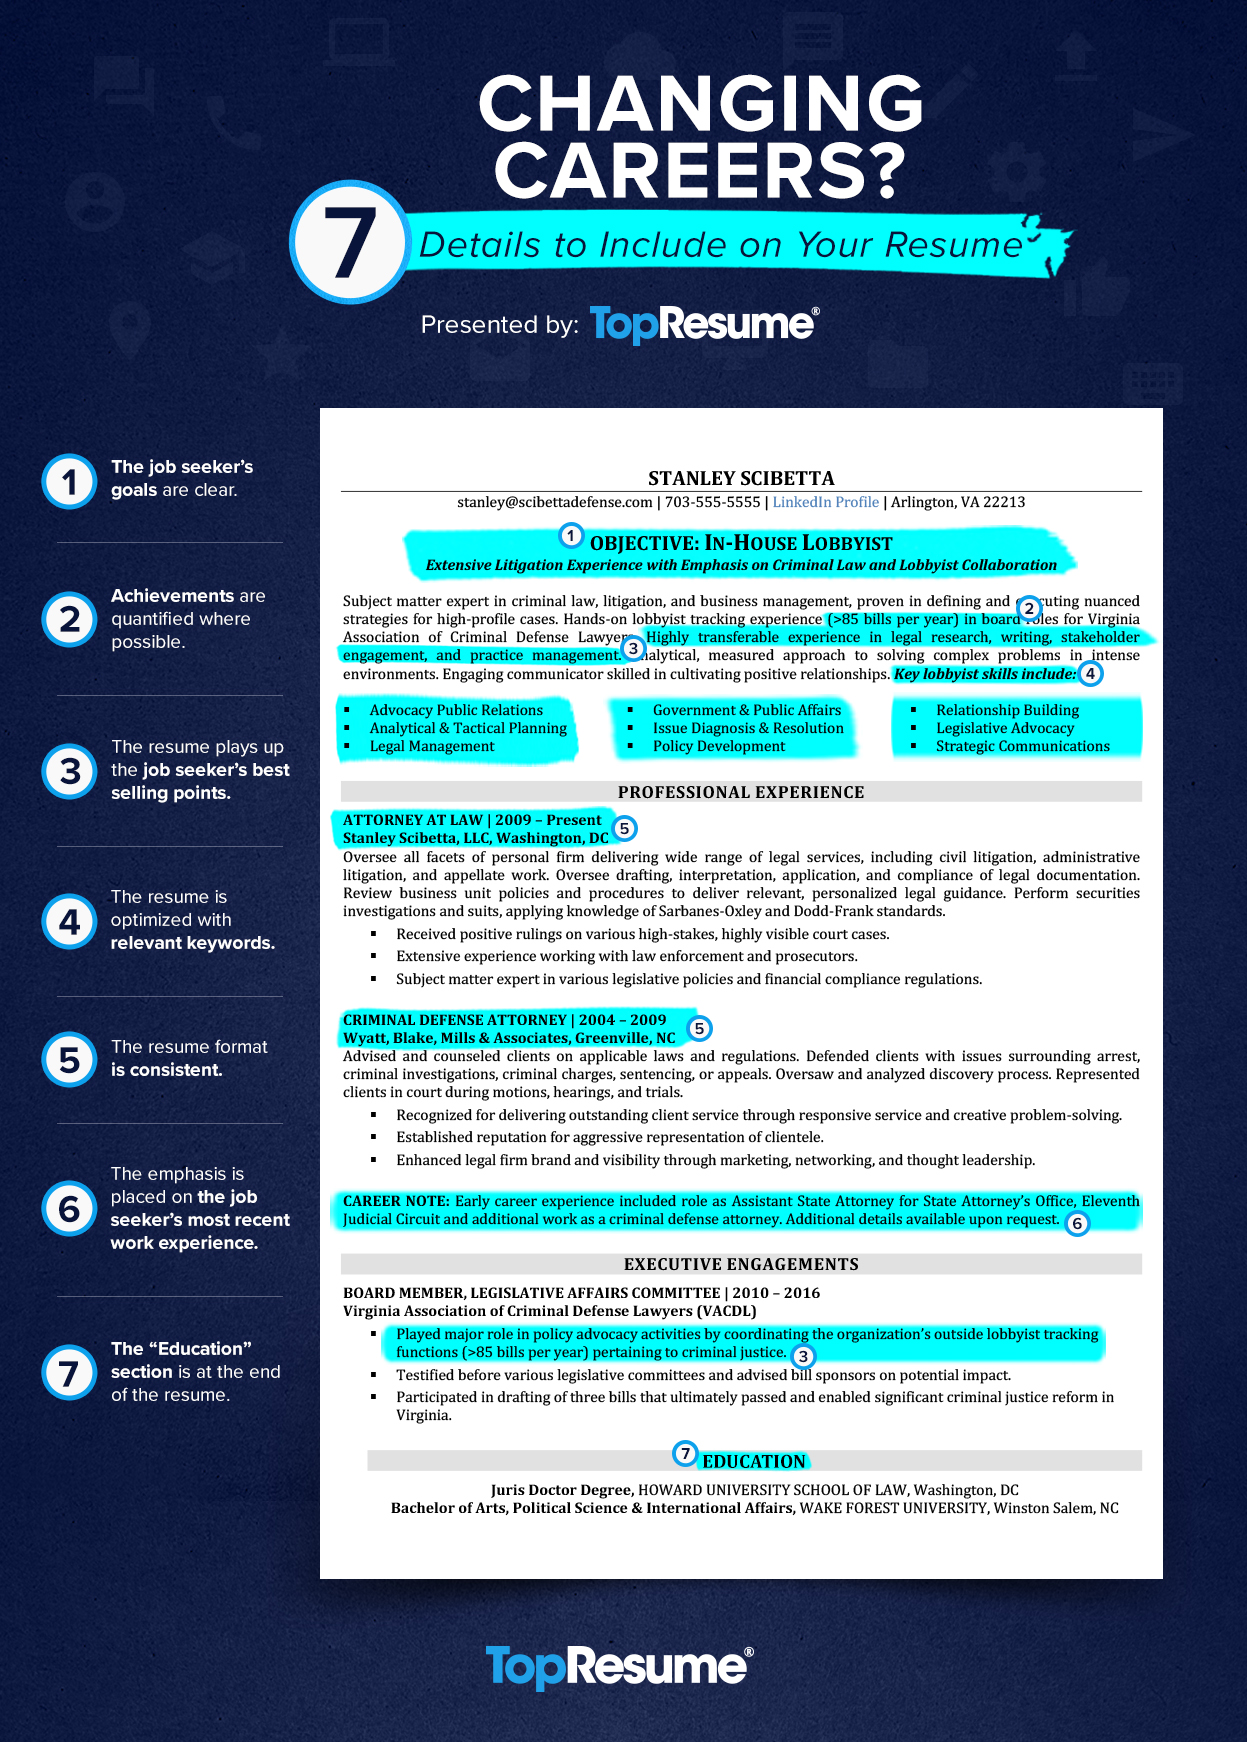 changing careers details to include on your resume topresume career change templates ig Resume Career Change Resume Templates